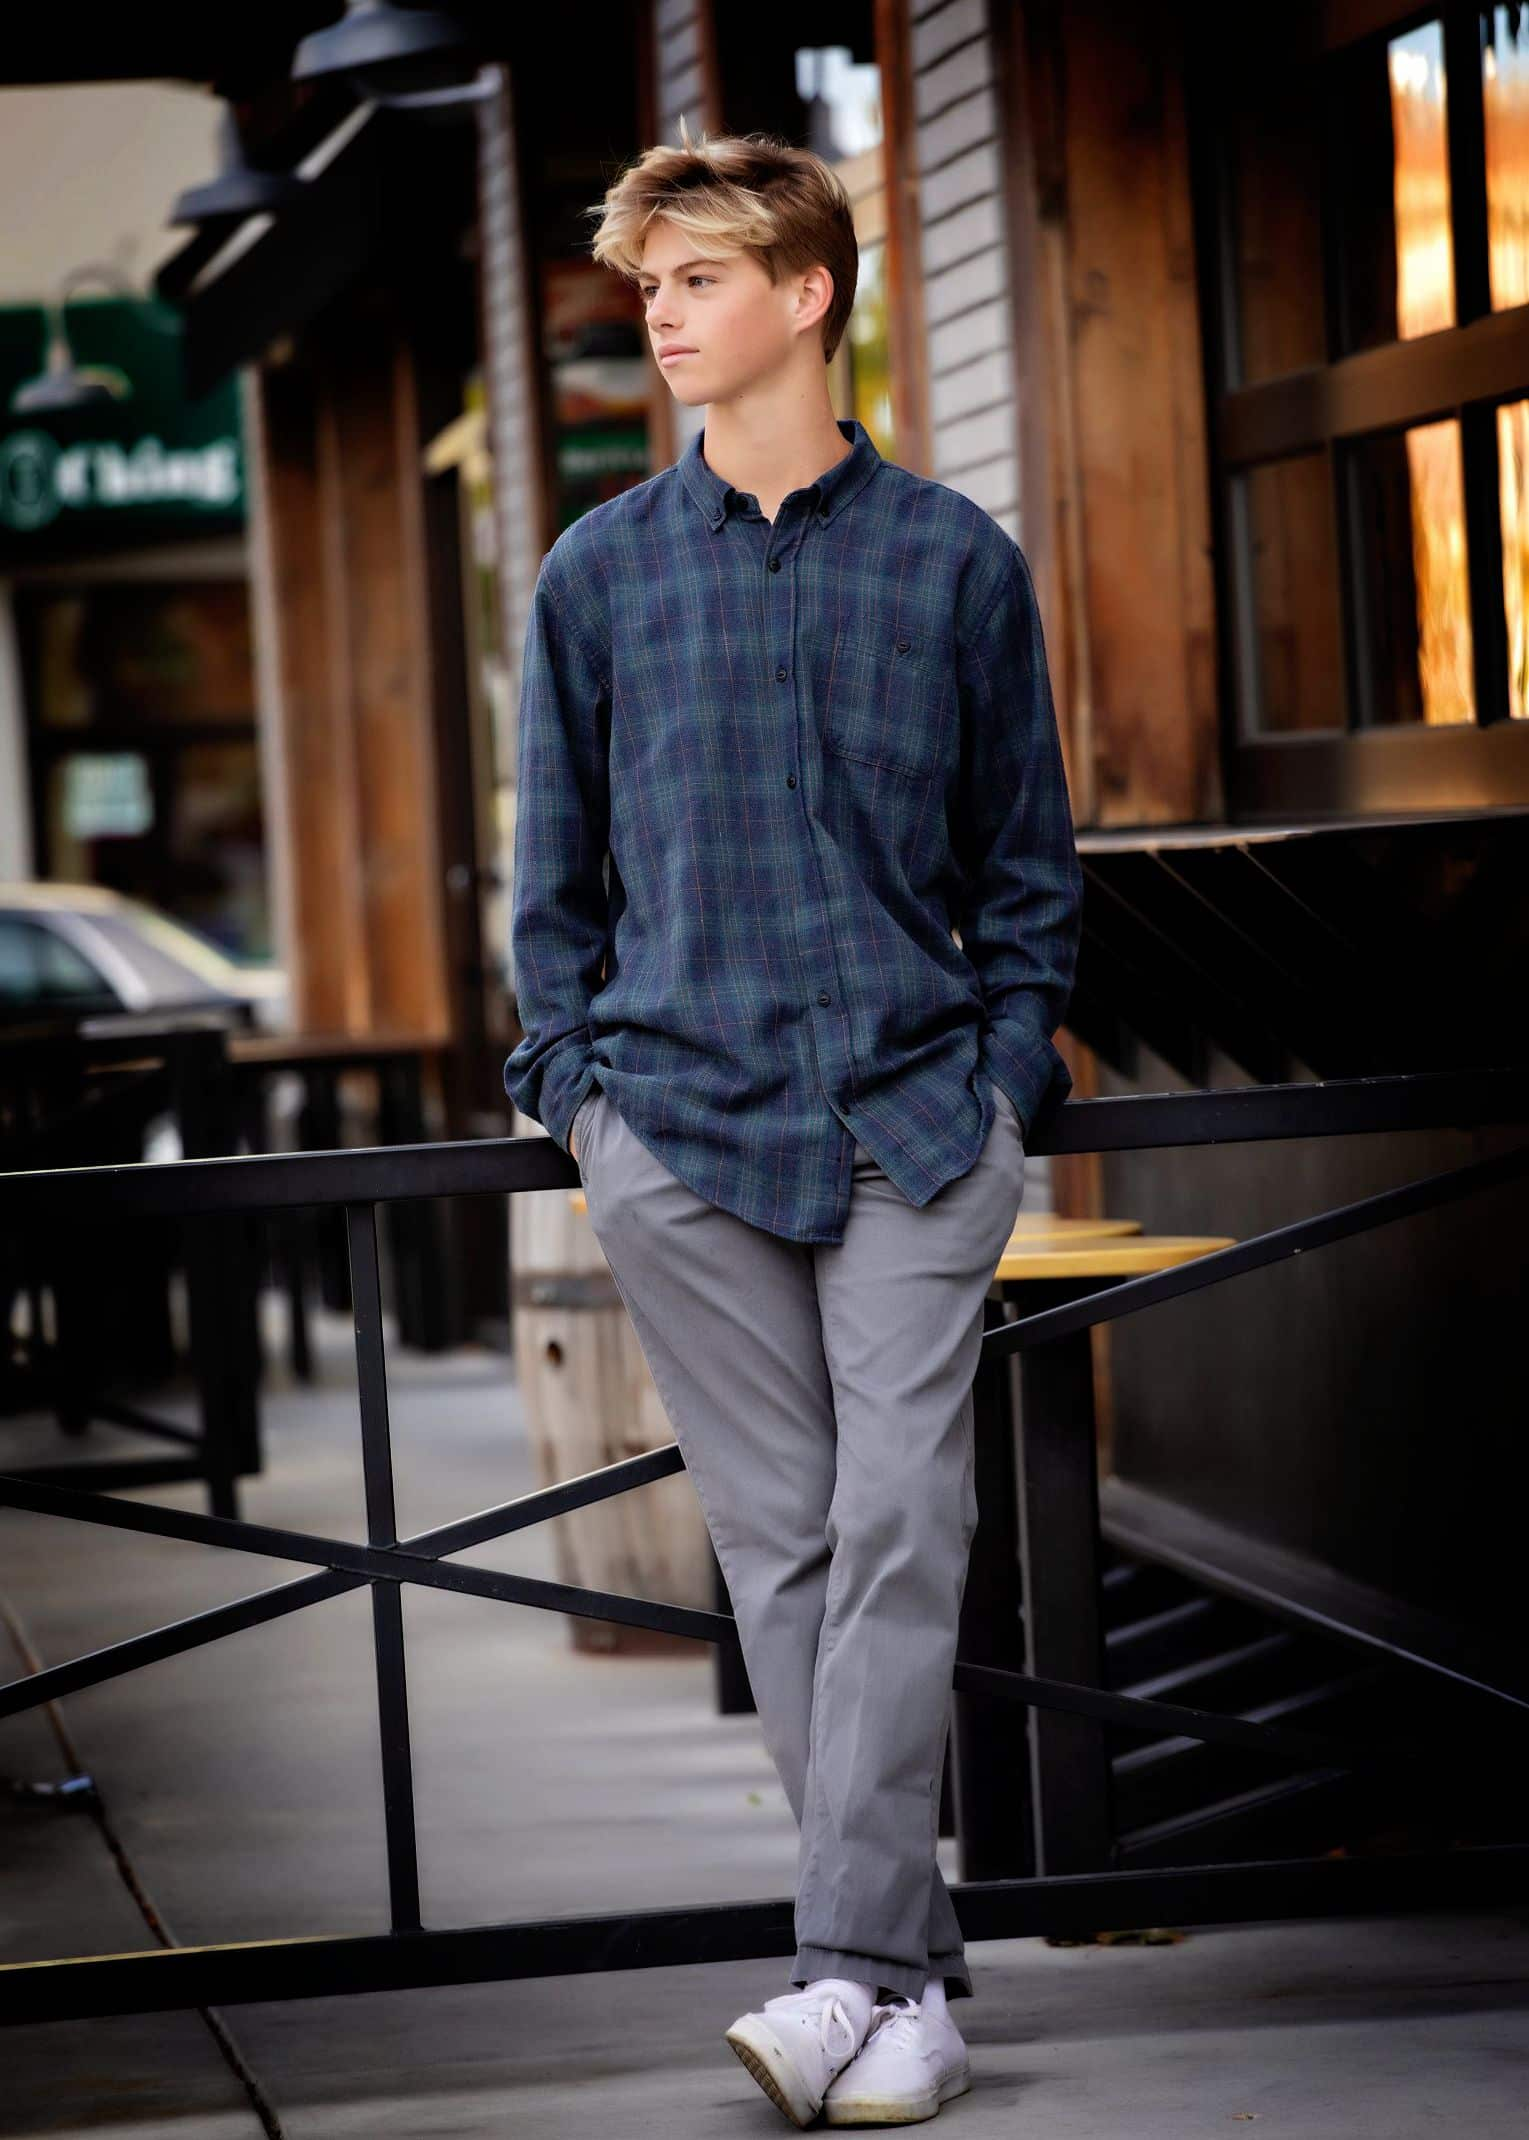 Teen leaning against storefront rail